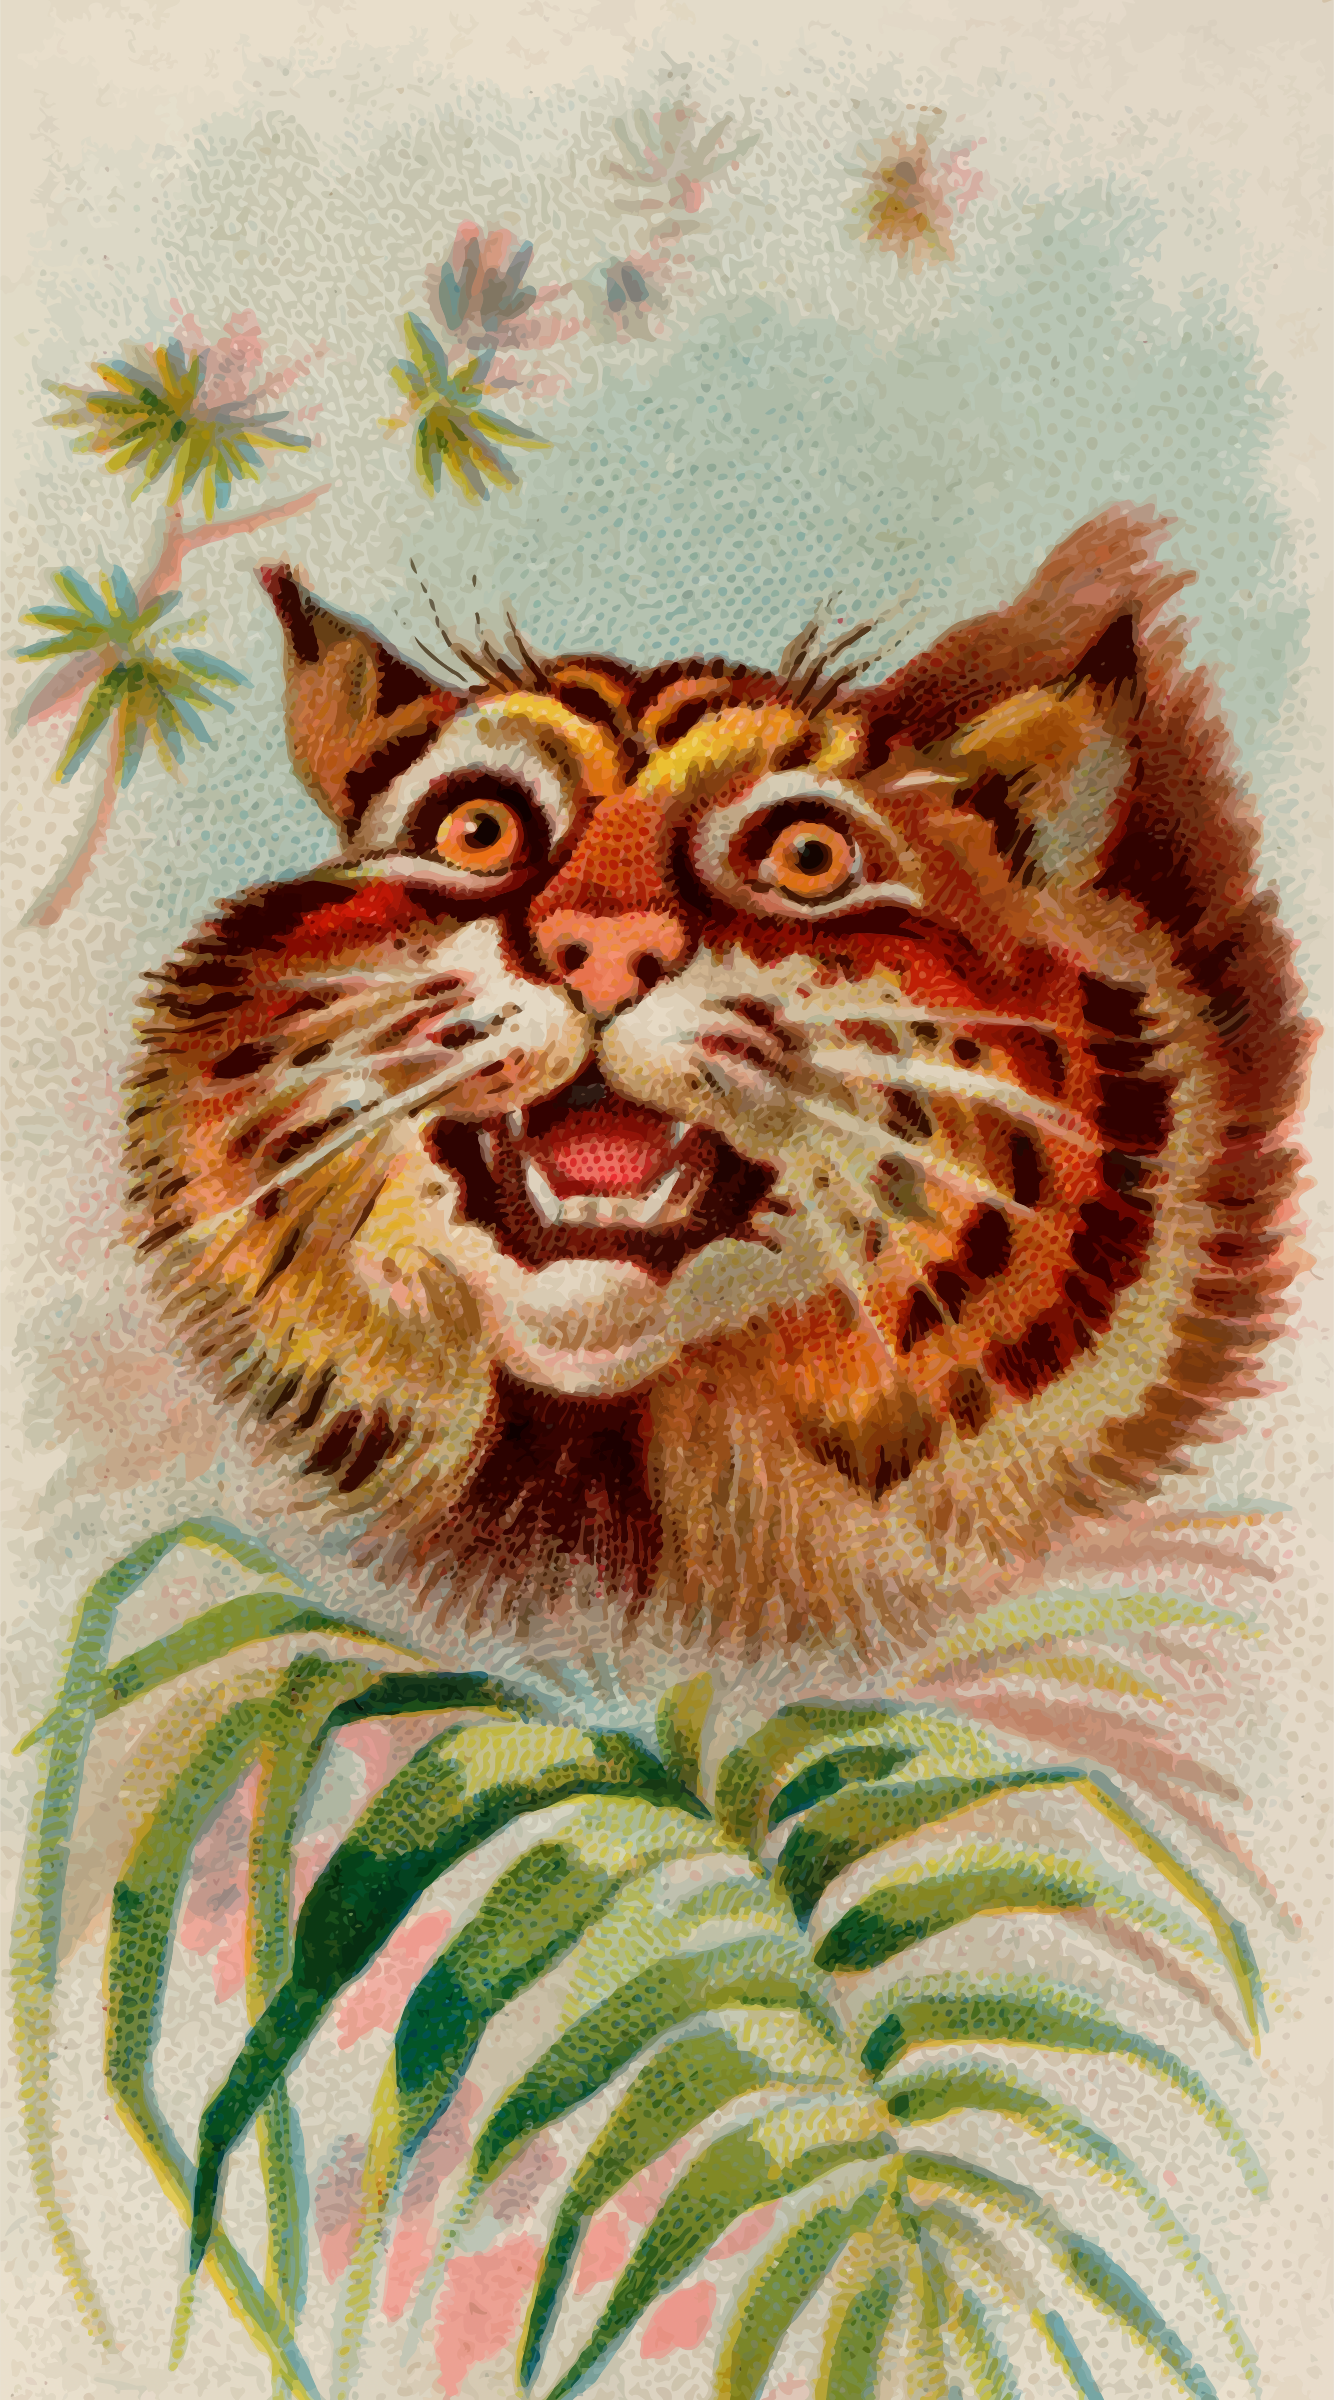 Cigarette card - American wildcat by Firkin